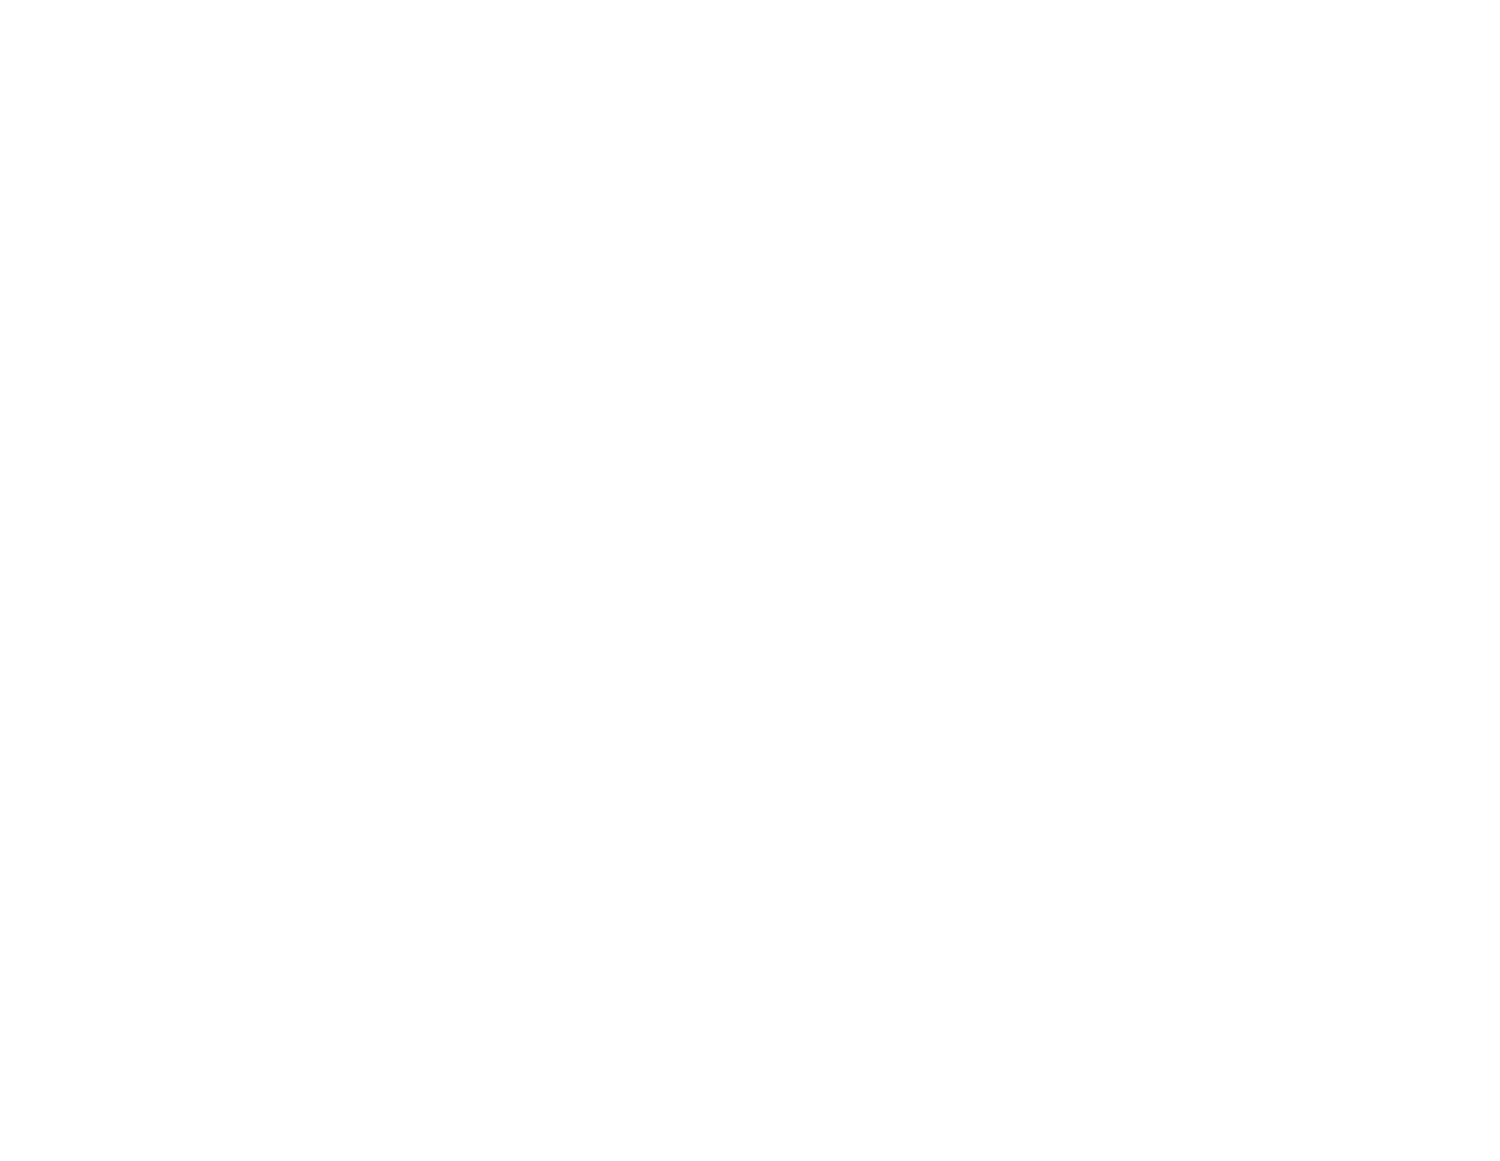 Cypress Window Cleaning logo